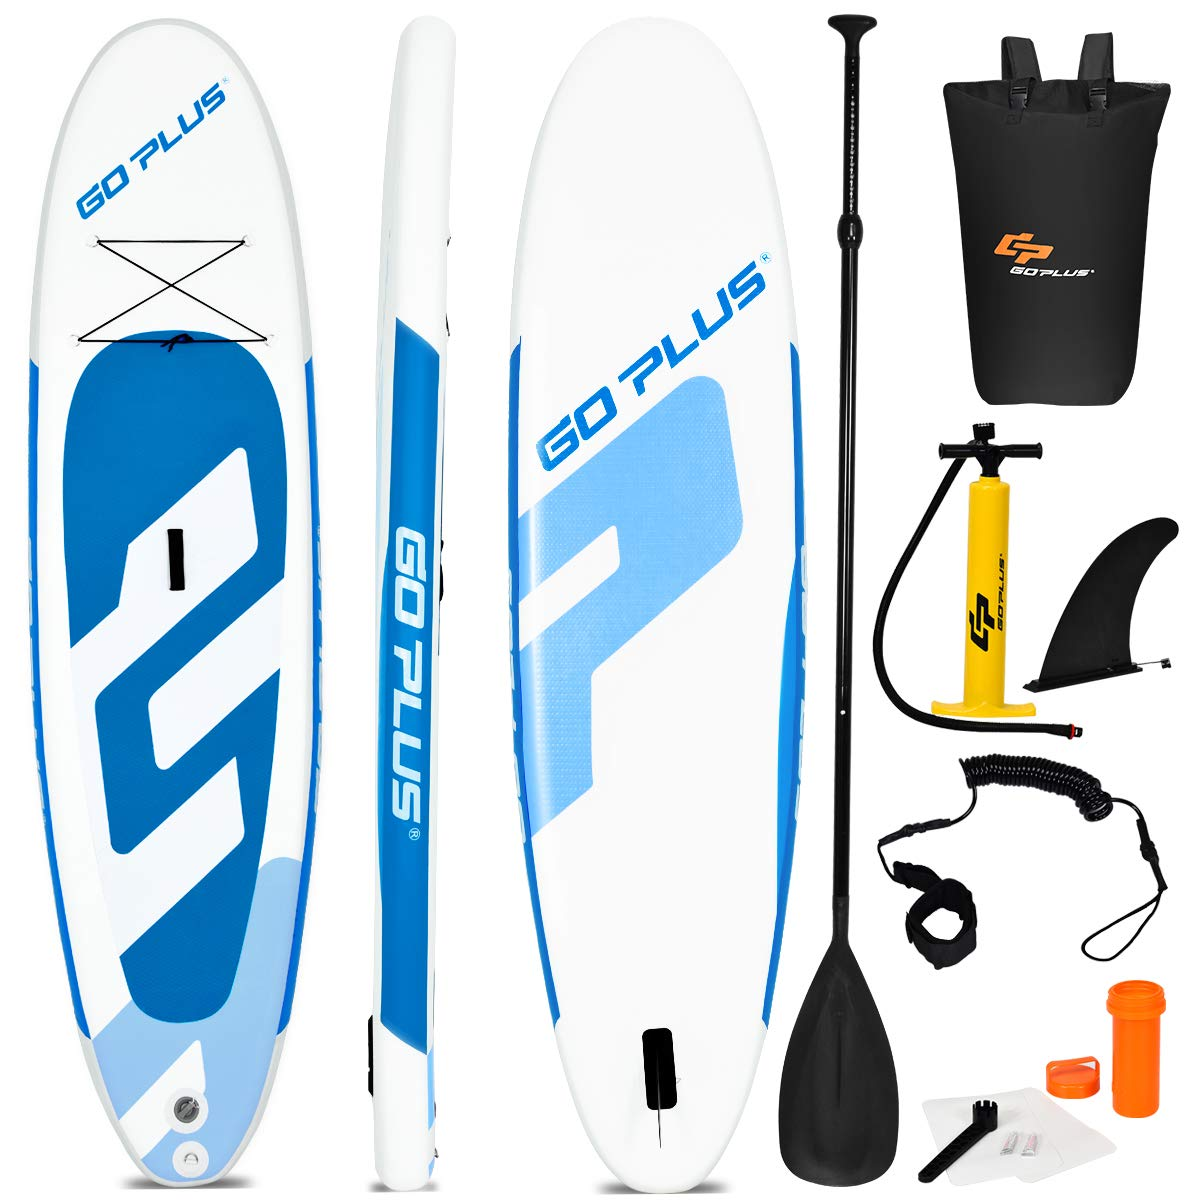 Goplus Inflatable Stand Up Paddle Board, 6'' Thick SUP with Accessory Pack, Adjustable Paddle, Carry Bag, Bottom Fin, Hand Pump, Non-Slip Deck, Leash, Repair Kit (Blue, 10FT) by Goplus